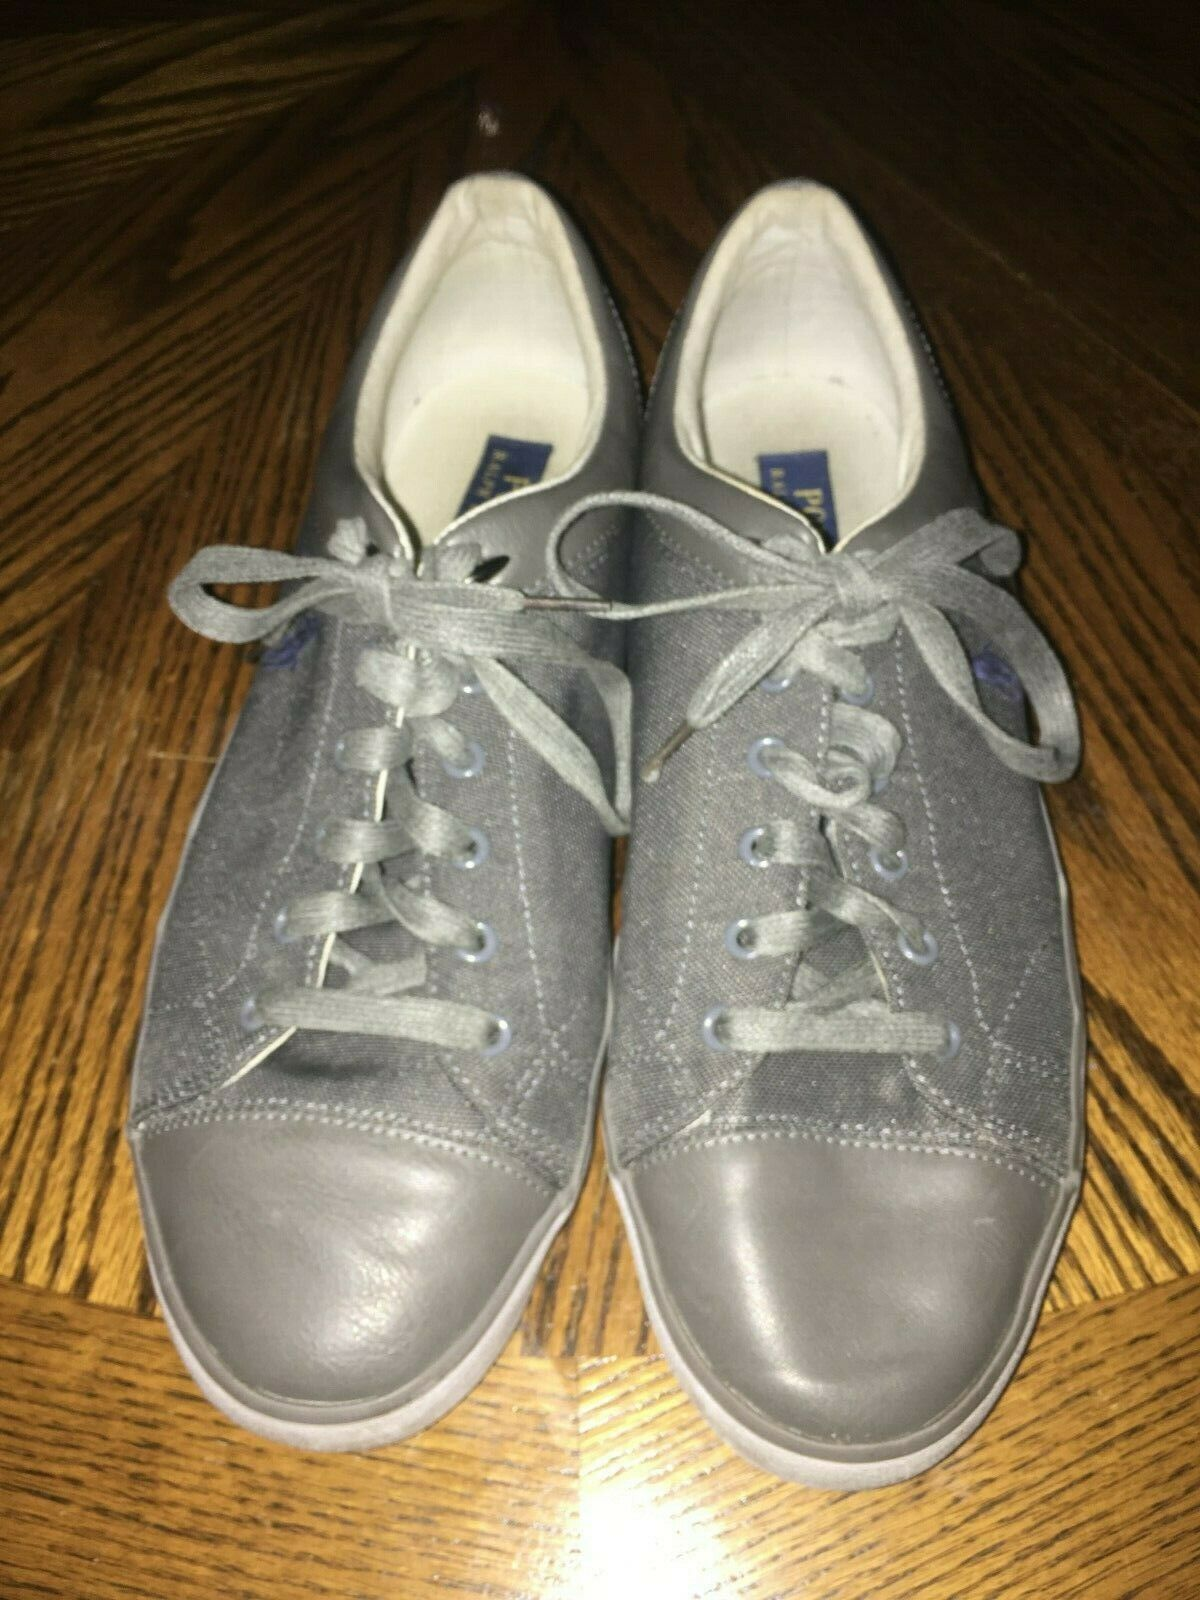 Polo Ralph Lauren Leather Pony Sneakers Size 12D  Grey